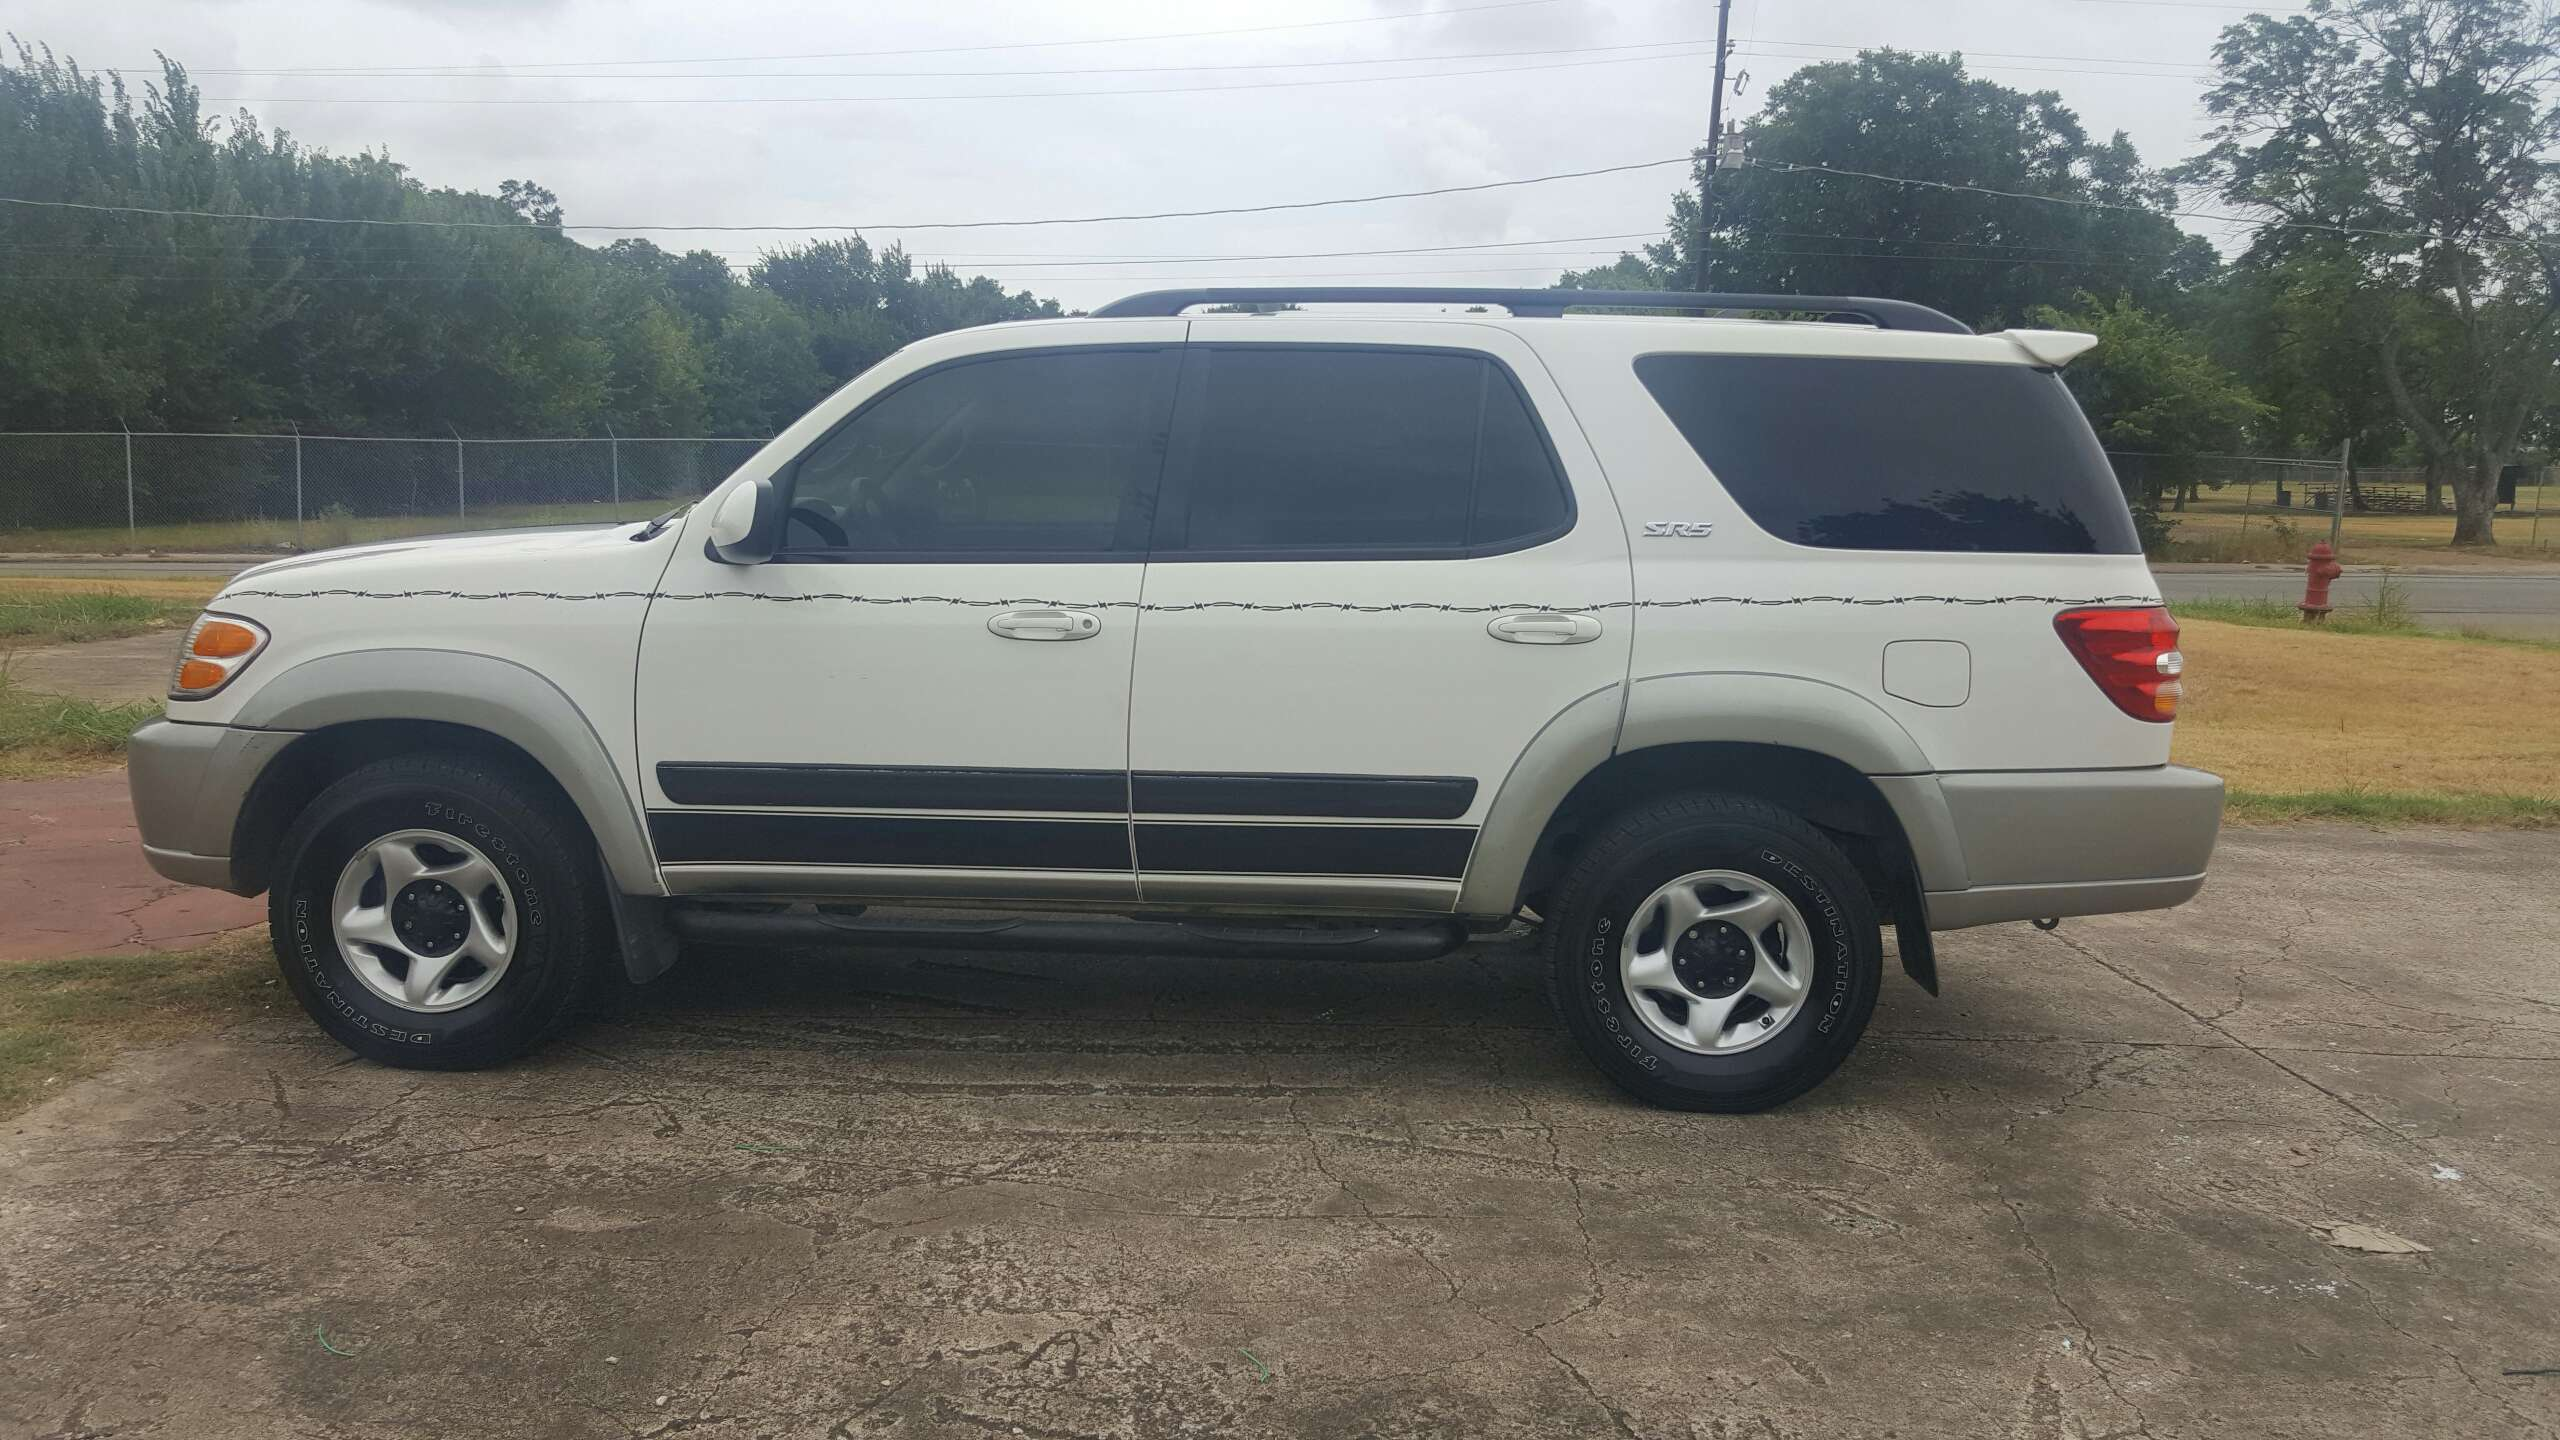 2003 toyota sequoia for sale in grand prairie tx 5miles. Black Bedroom Furniture Sets. Home Design Ideas